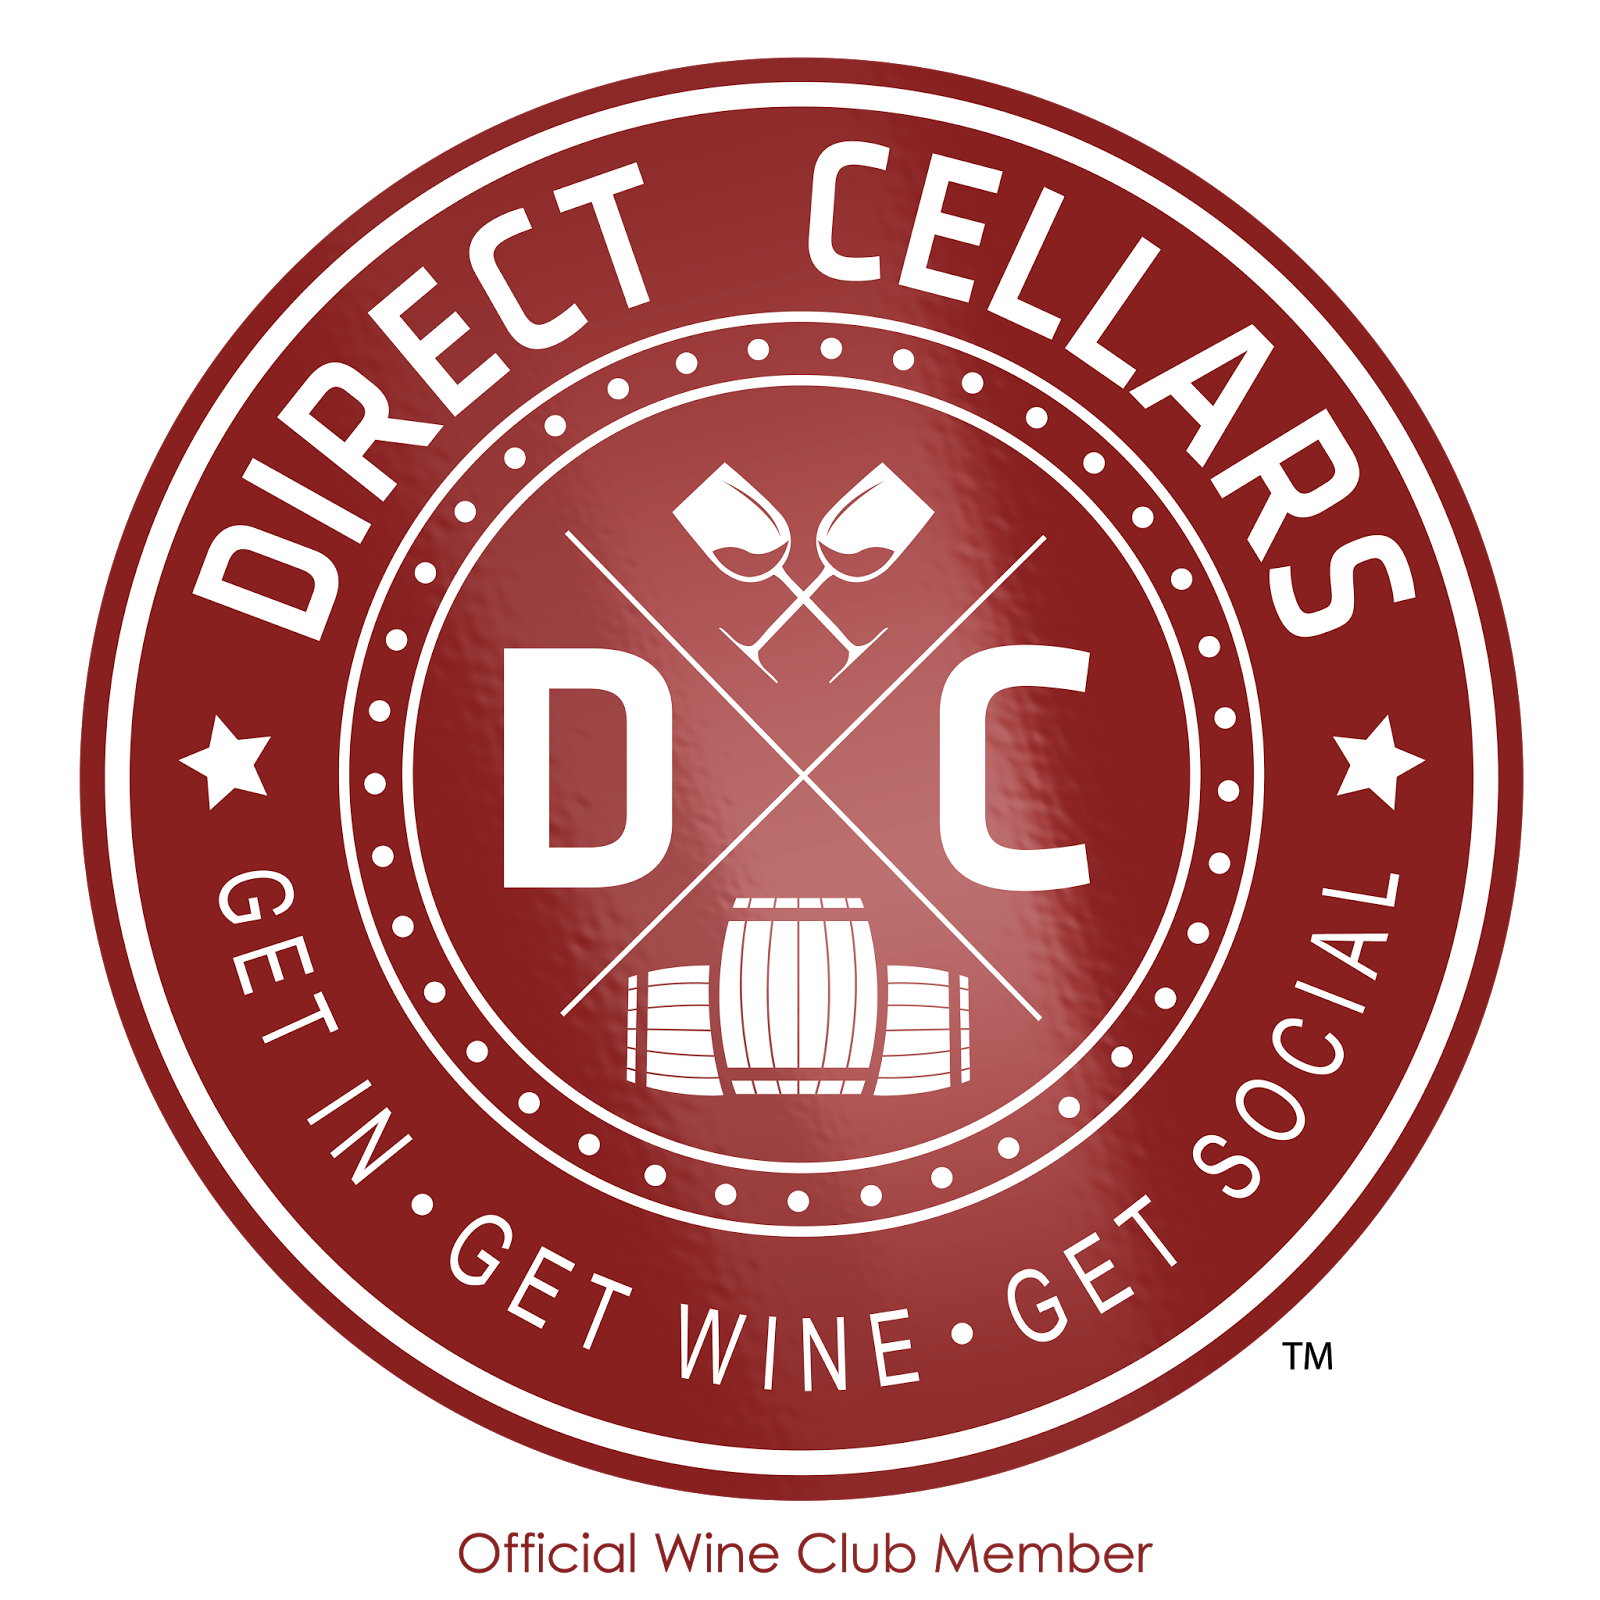 Direct Cellars Wine Club Review